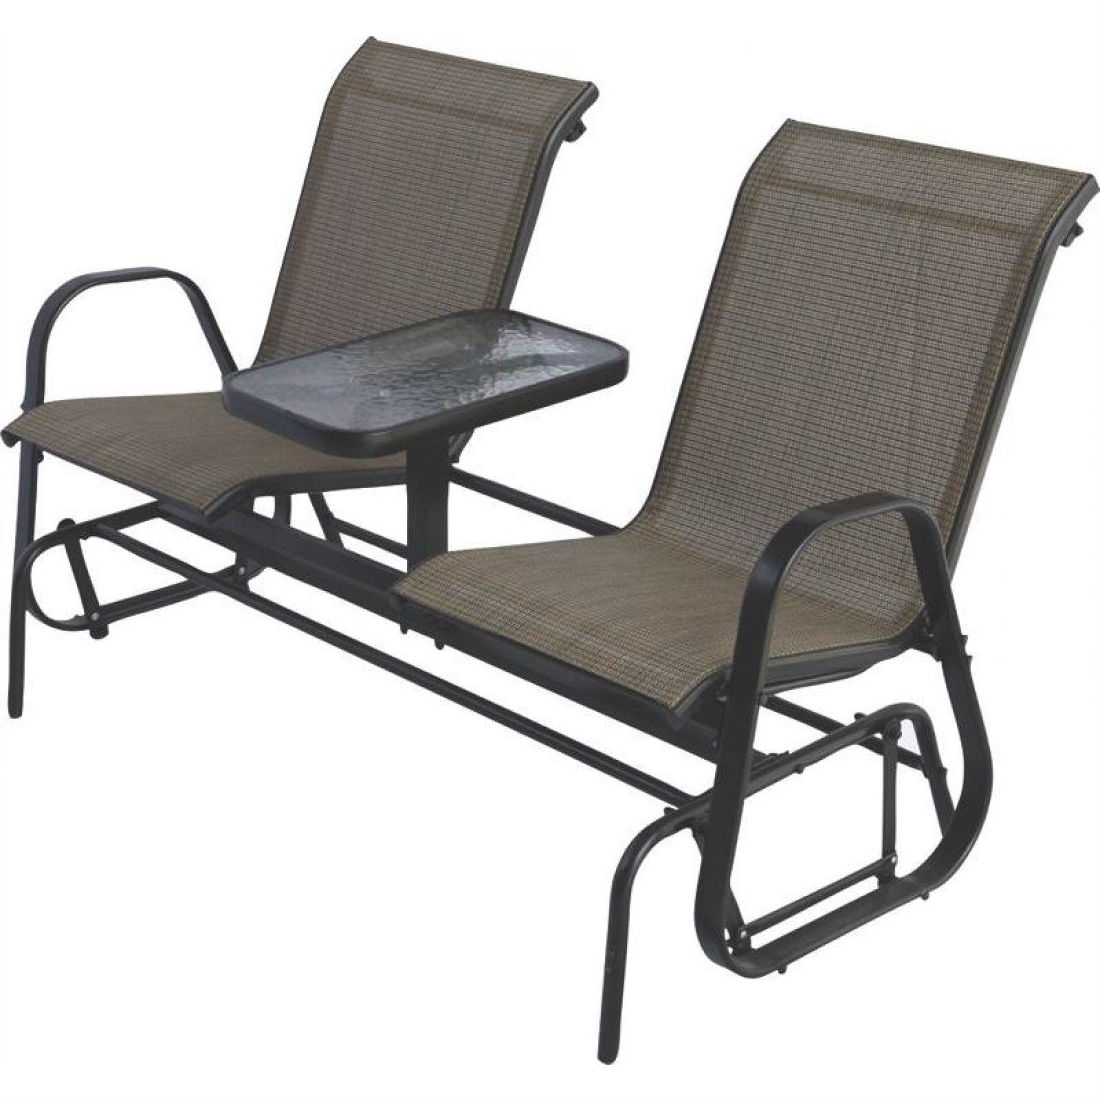 2-Person Outdoor Patio Furniture Glider Chairs with Console Table - 2-Person Outdoor Patio Furniture Glider Chairs With Console Table